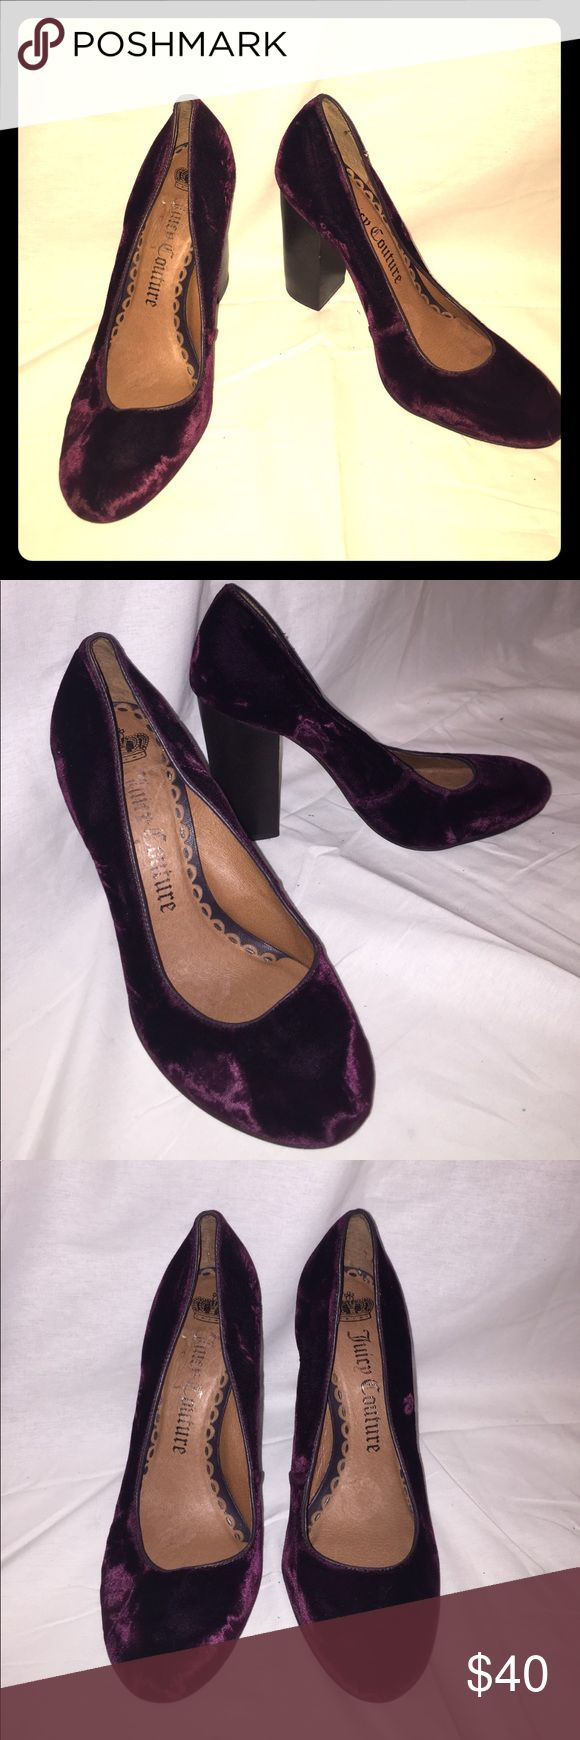 Maroon Velour Juicy Couture Pumps size 8.5 These are used Juicy Couture pumps with a soft Velour fabric. Maroon or burgundy colored. Size 8.5. Juicy Couture Shoes Heels